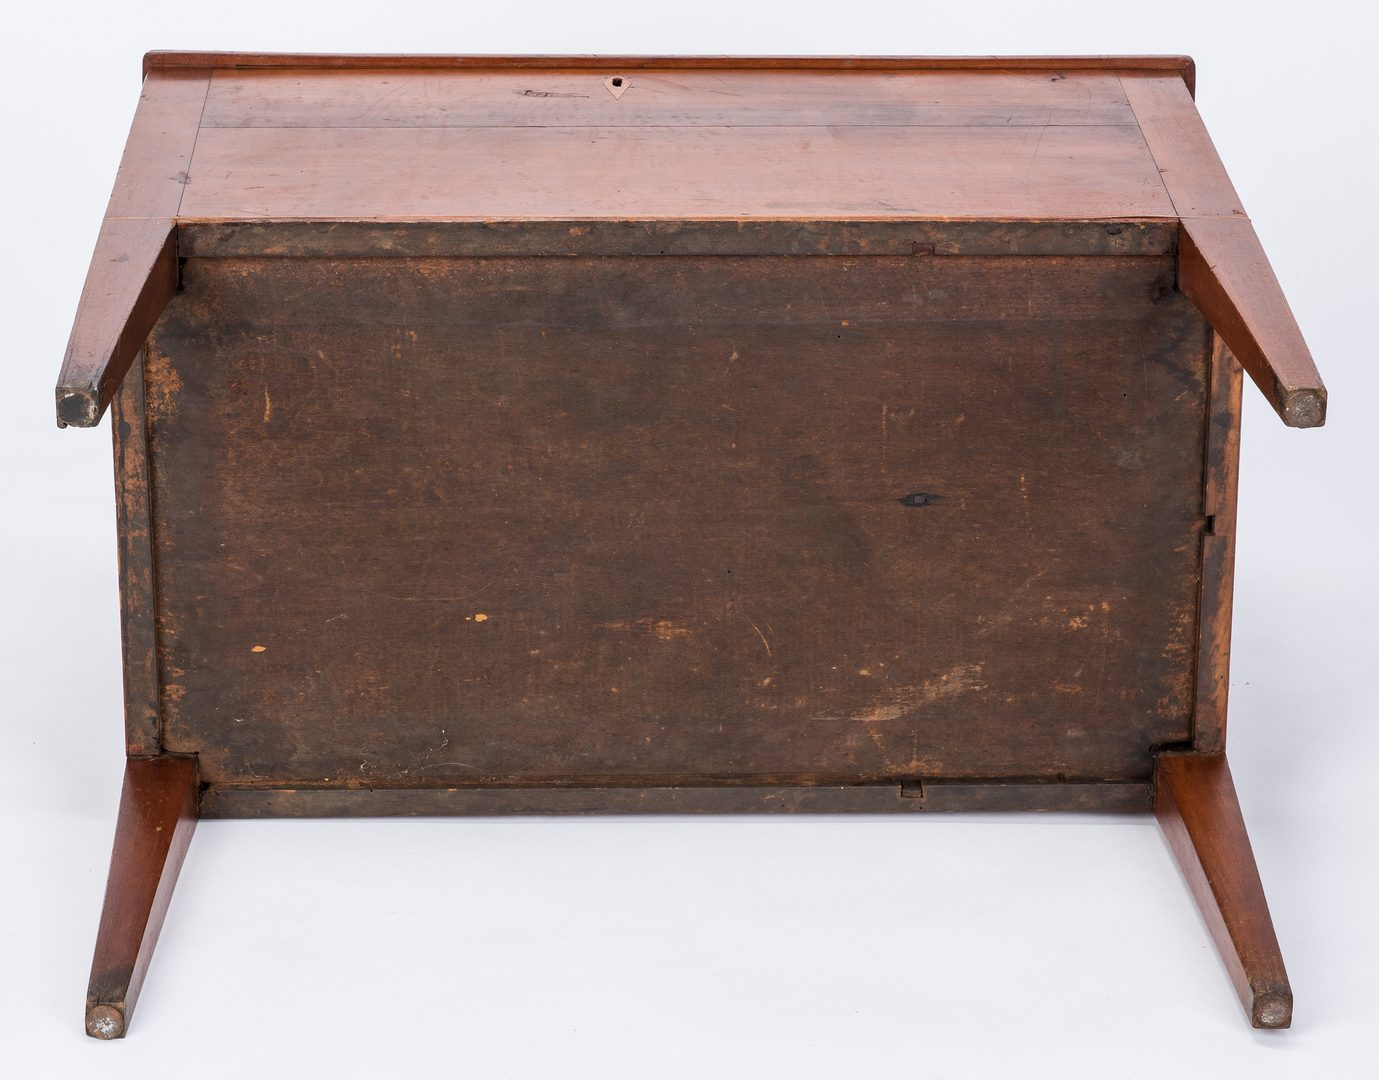 Lot 130: Kentucky Hepplewhite Inlaid Sugar Chest